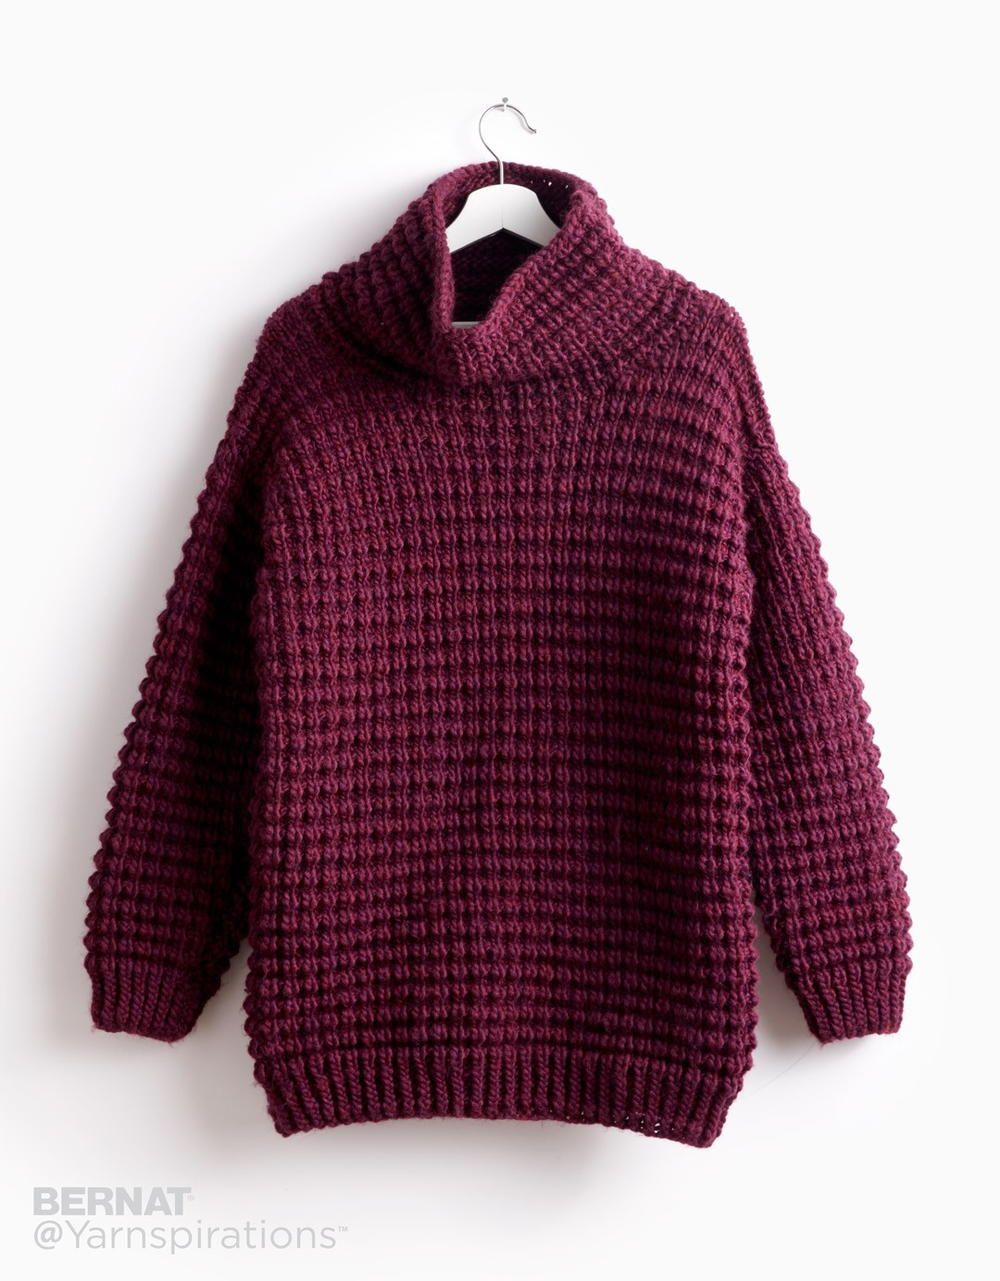 c69454f387b866 The beautiful rich plum color of this easy knit sweater pattern will  brighten up even the most dreary winter day.